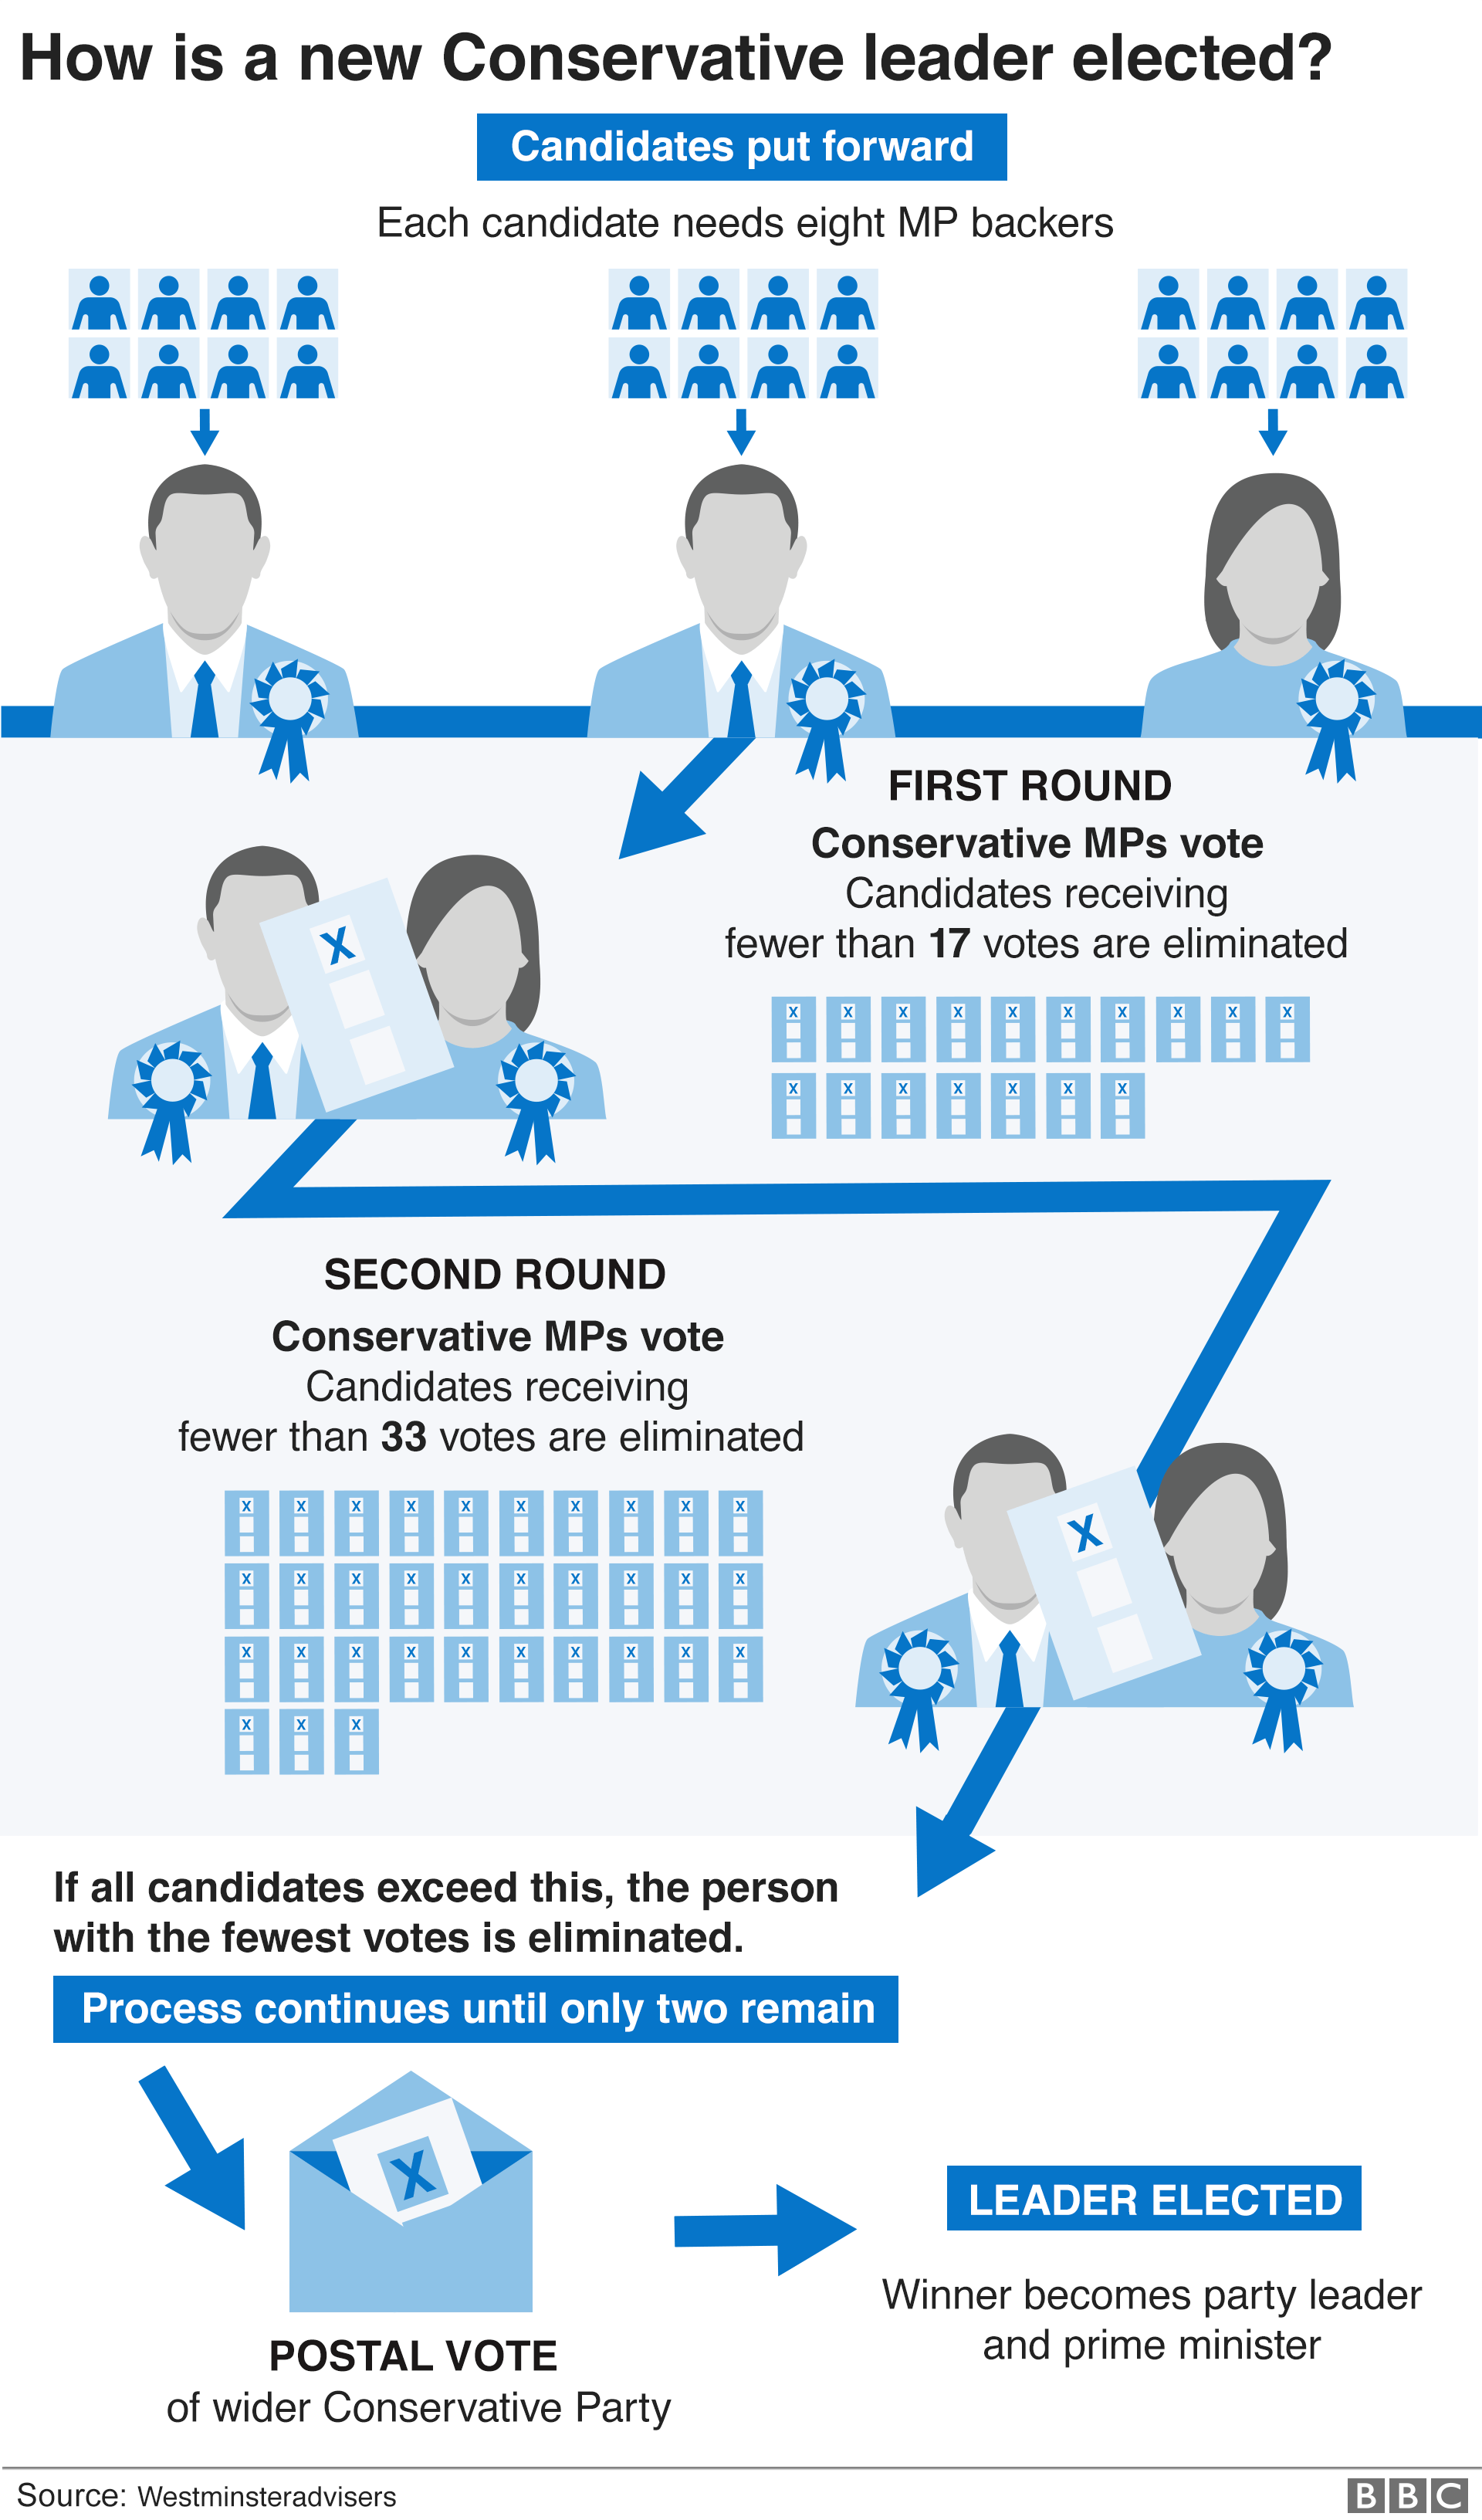 Graphic: How the Conservative Party elects a leader